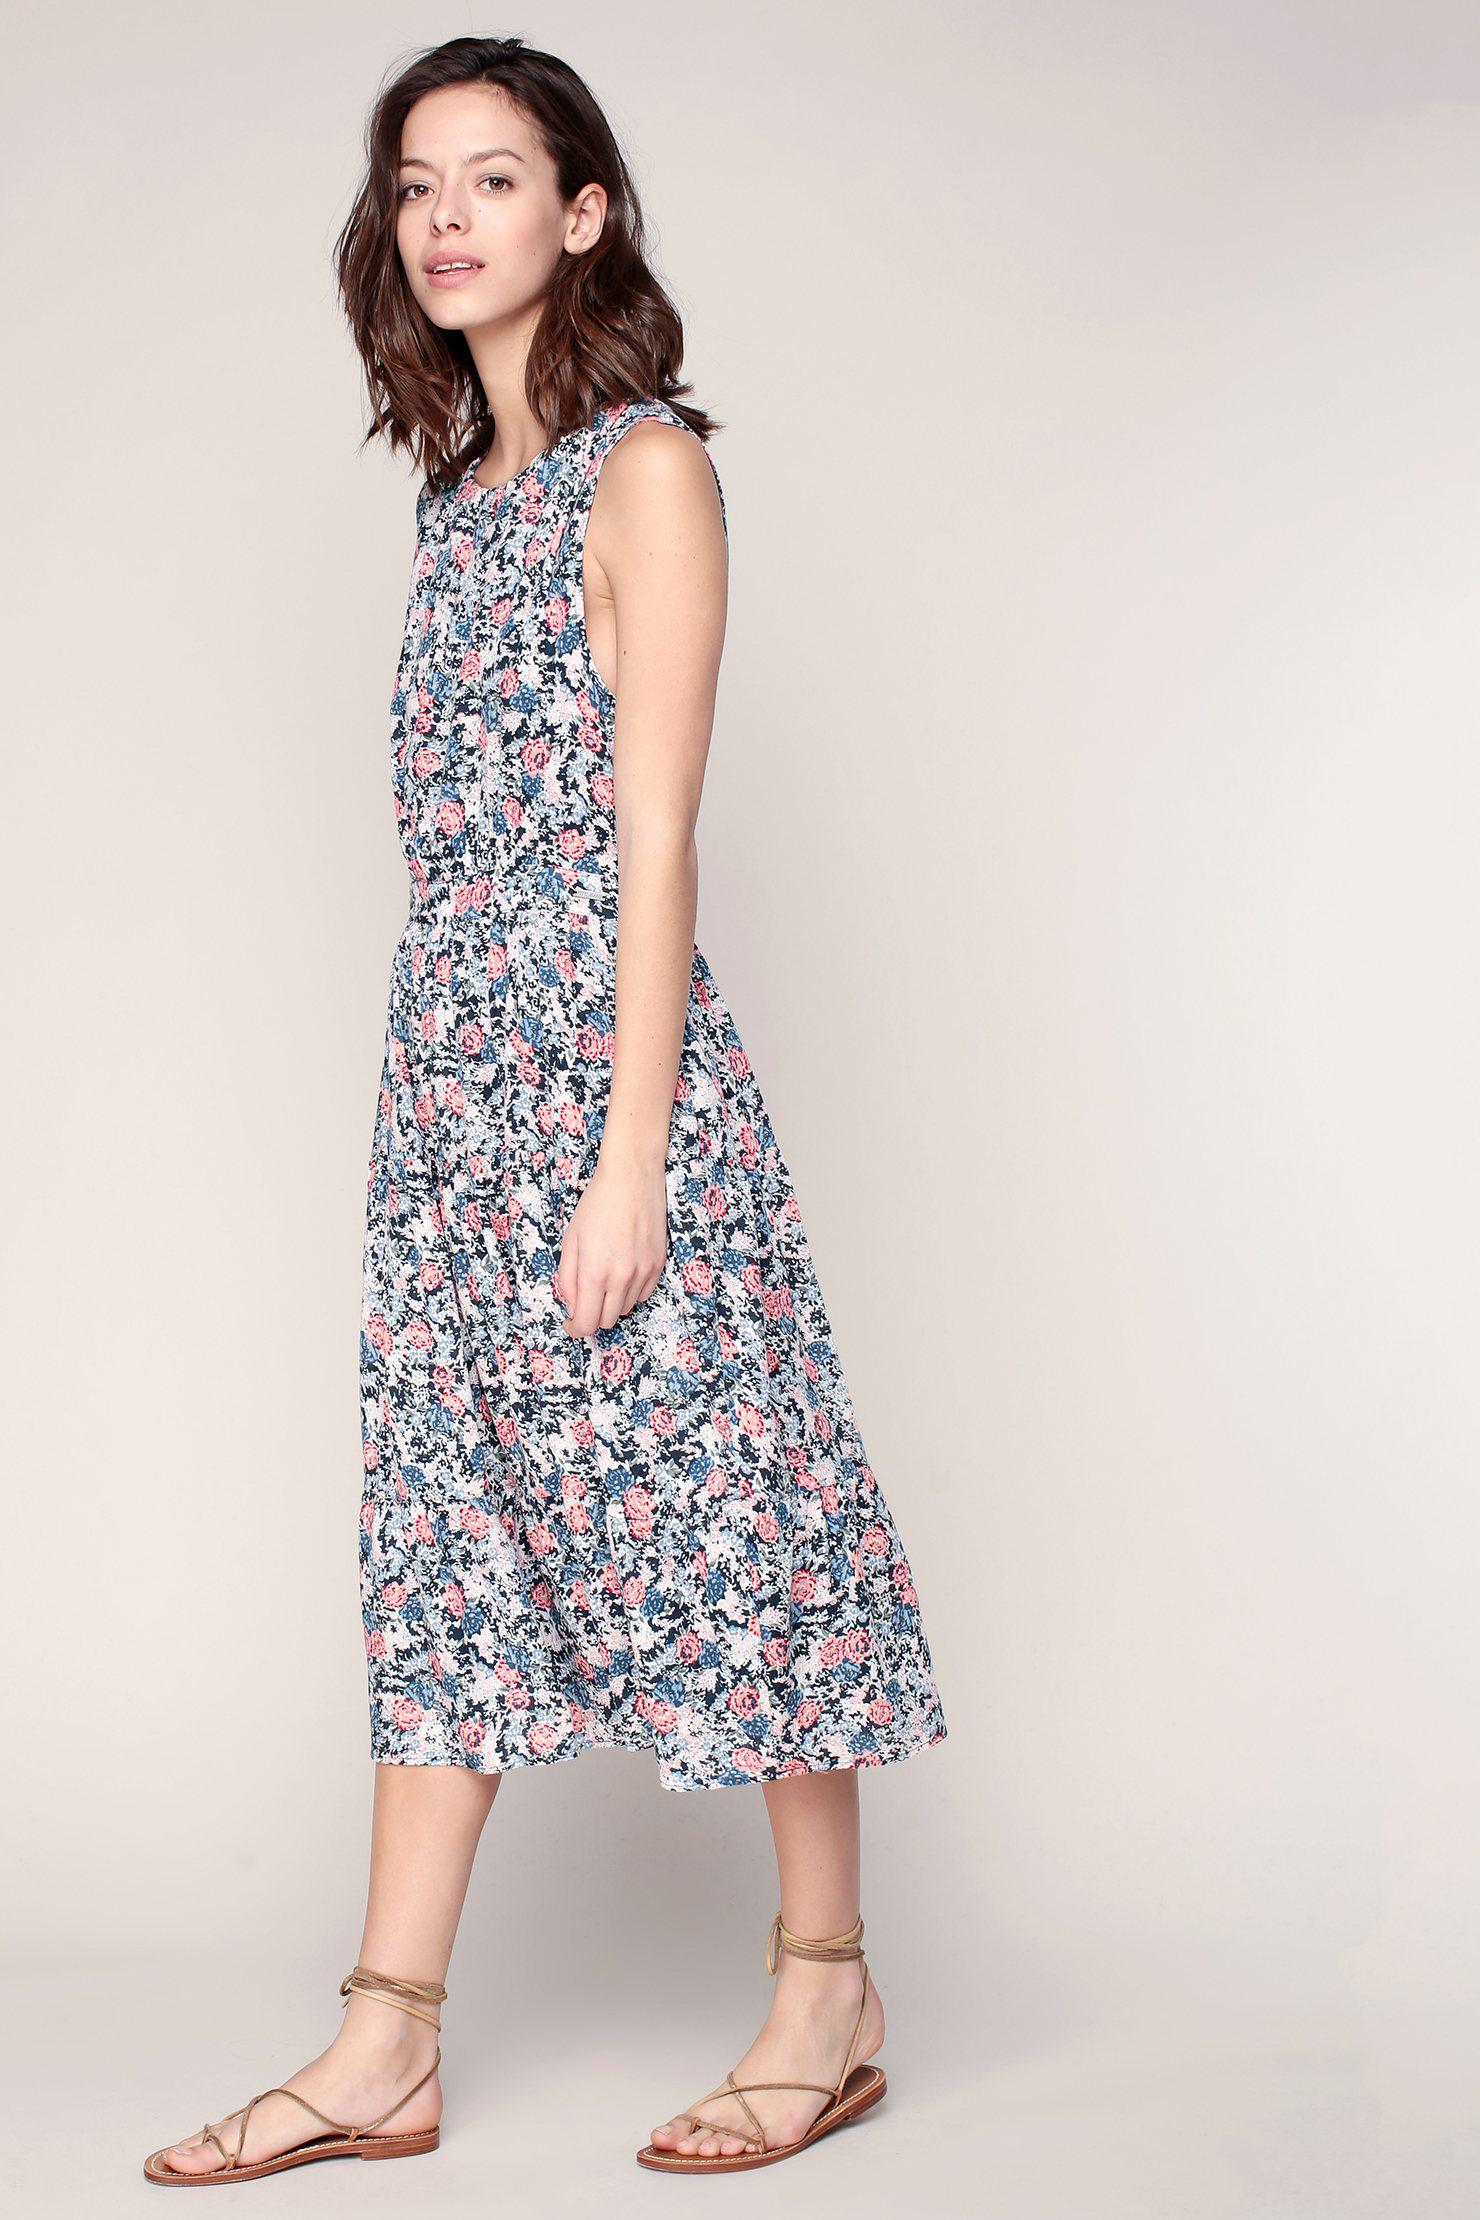 249d80b02c58 Lyst - Pepe Jeans Mid-length Dresse in Pink